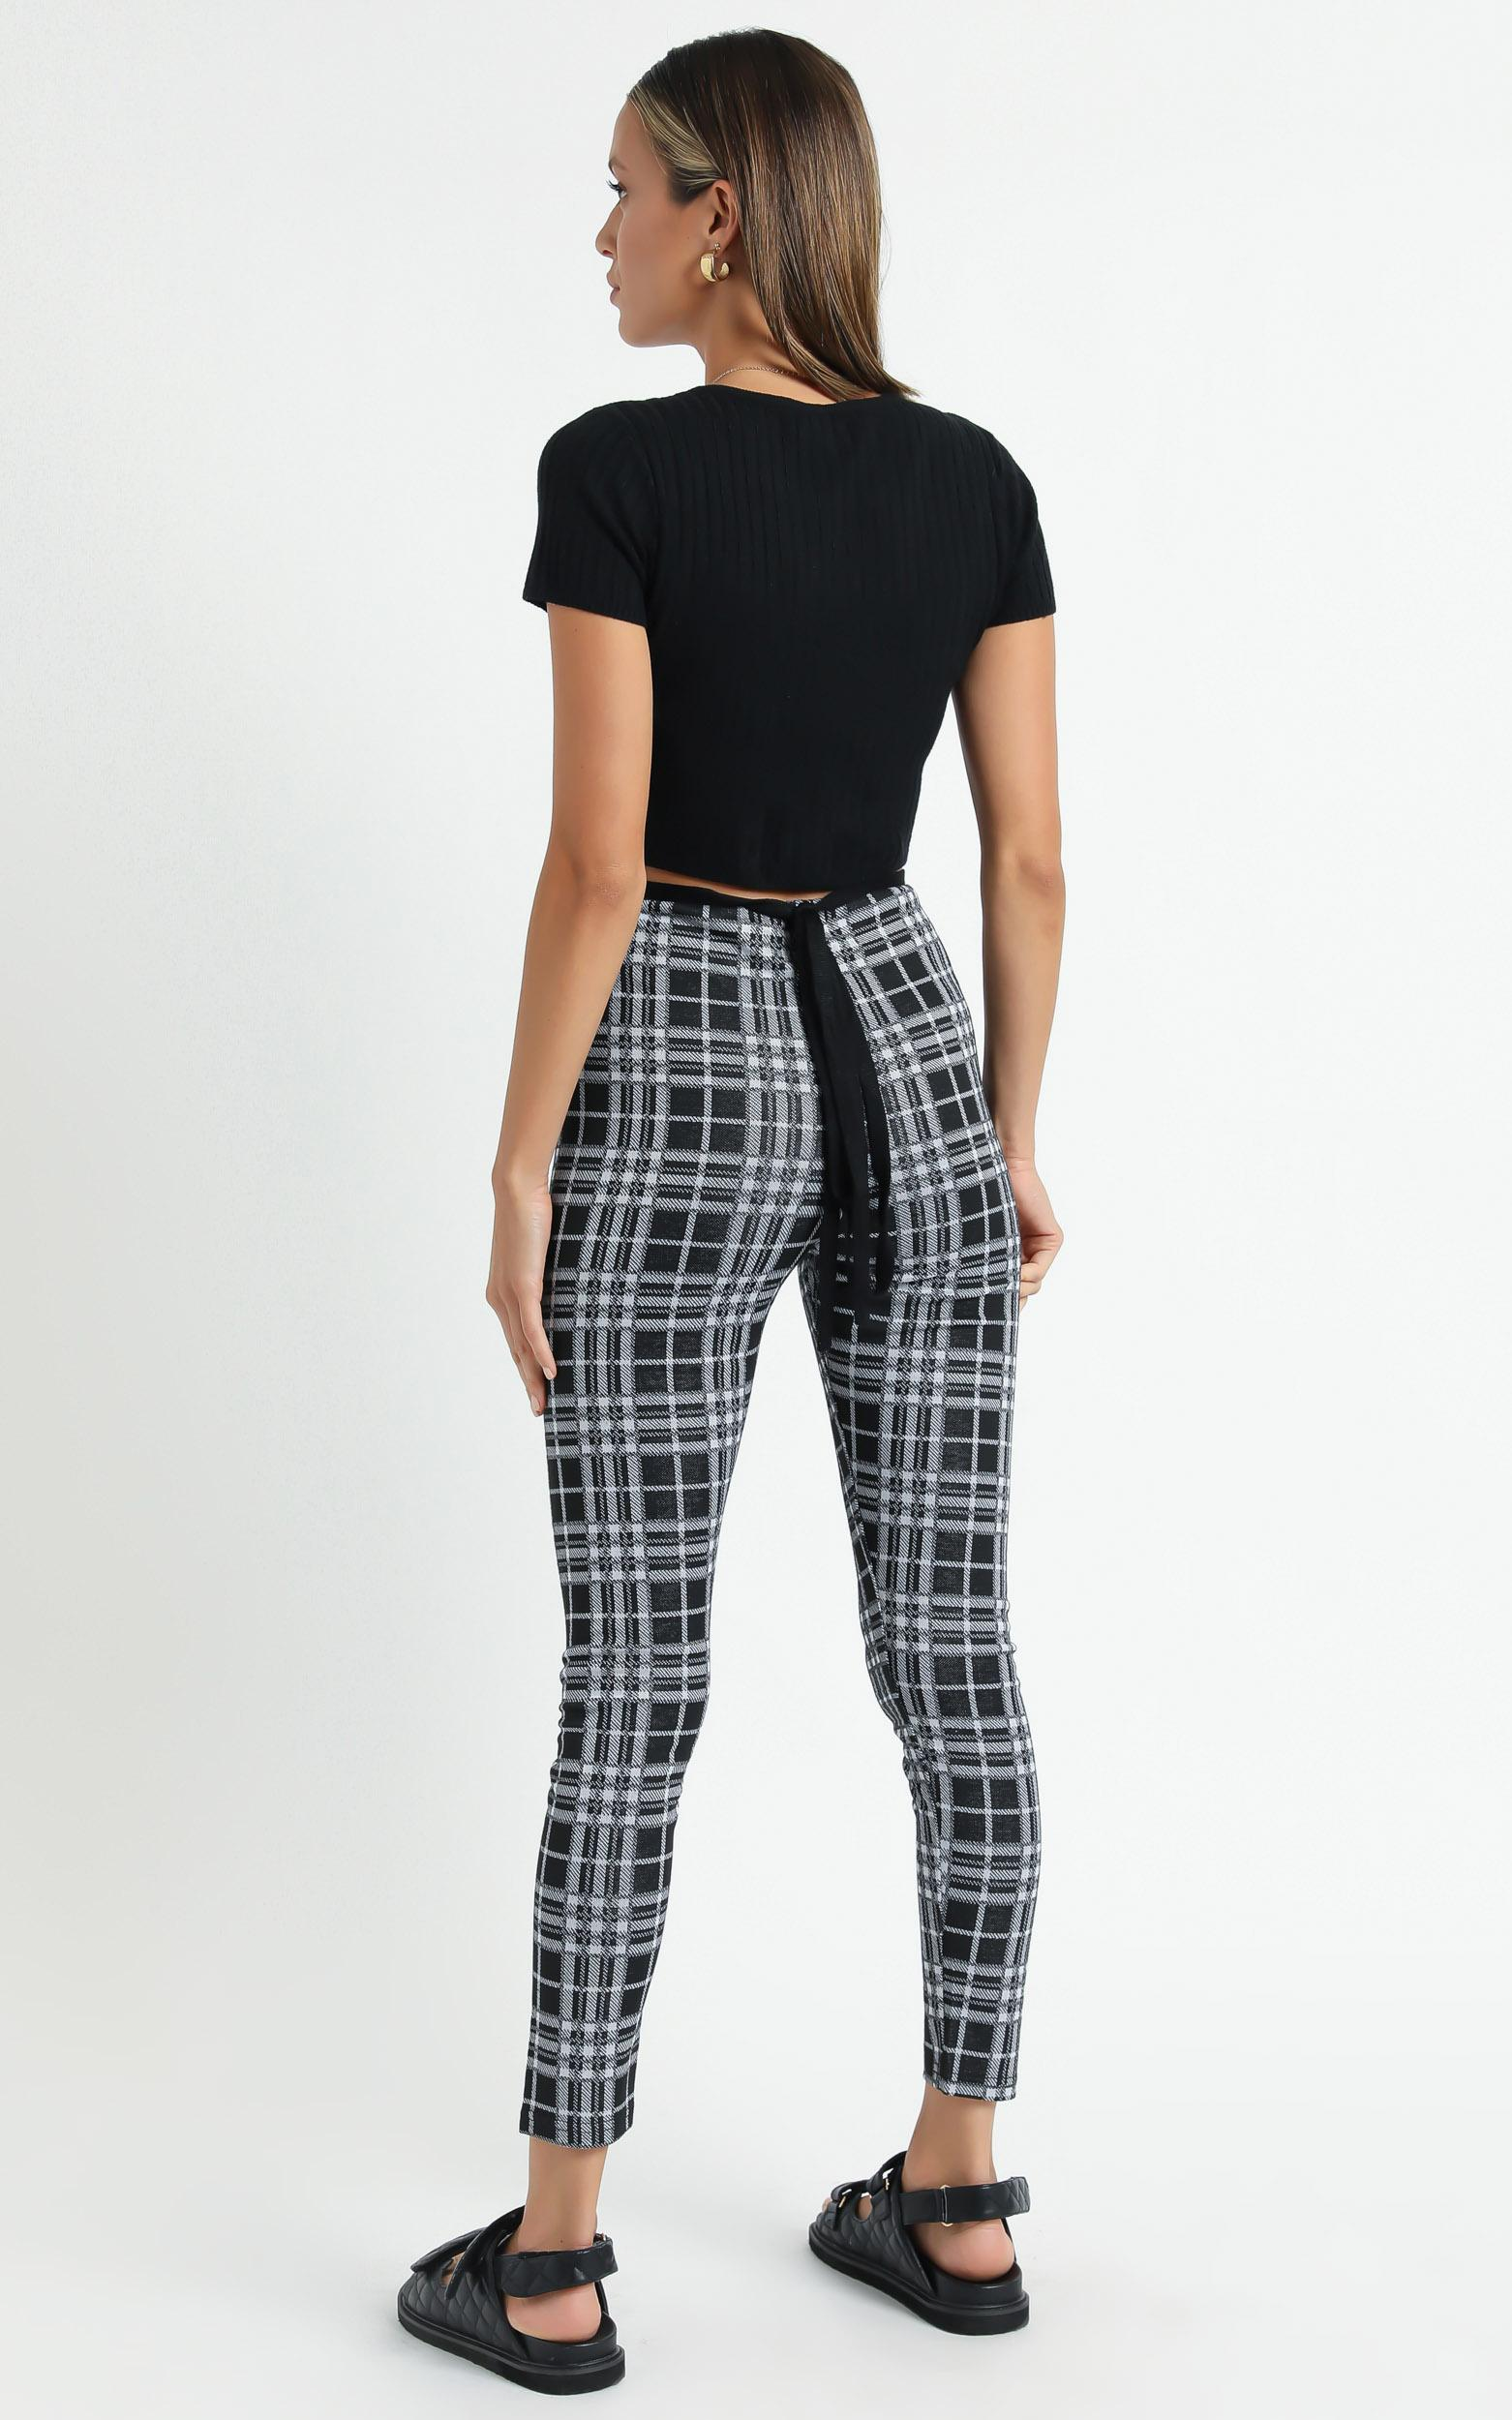 Brooklyn Baby pants in black check - 6 (XS), Black, hi-res image number null